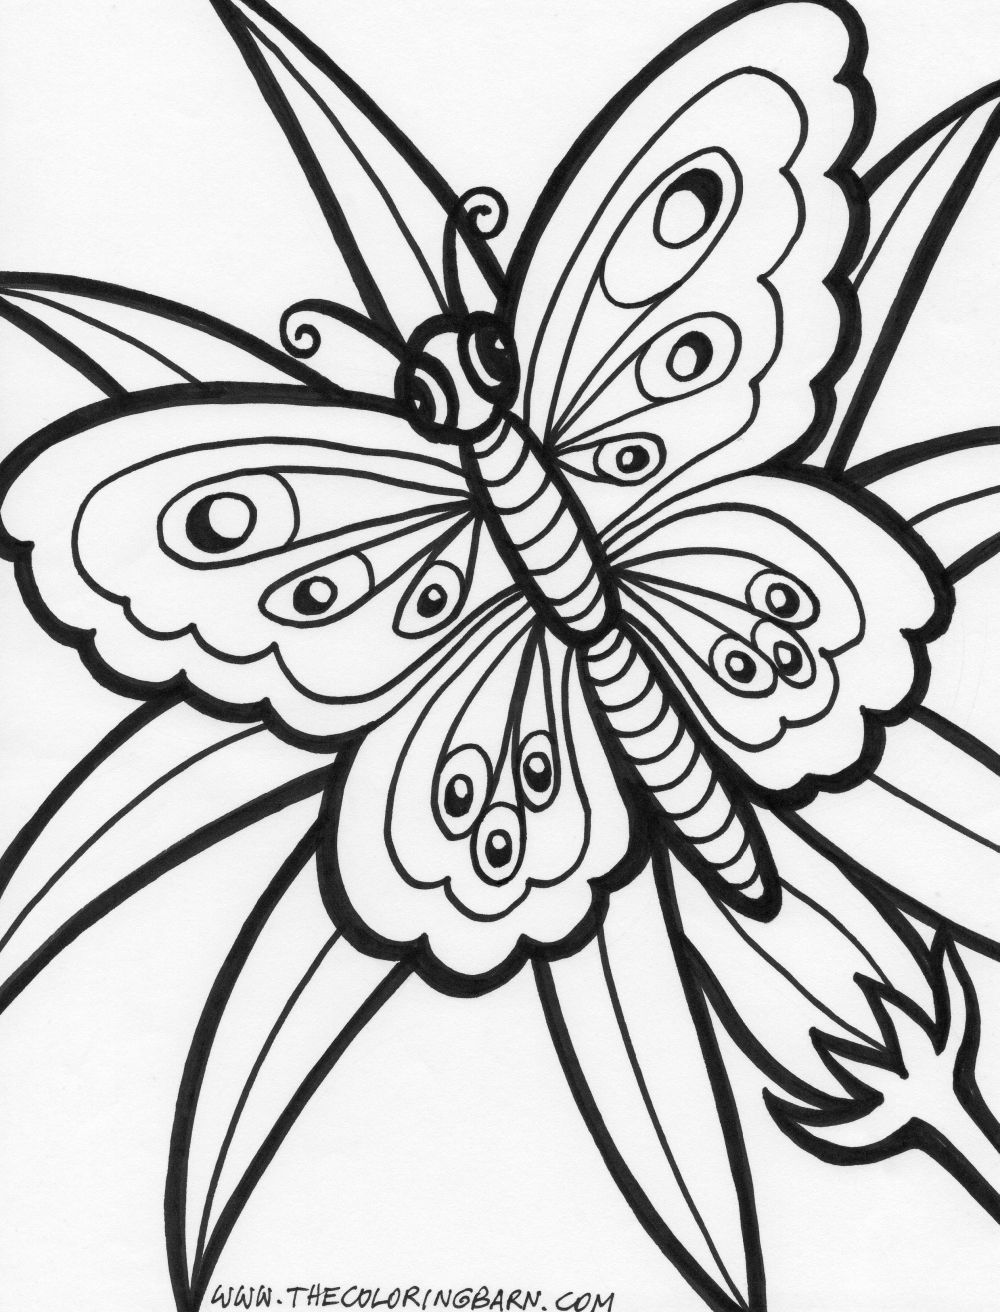 Coloring printouts flowers - Nice Two Butterflies With Flowers Color Page Free Printablegarden Check More At Http